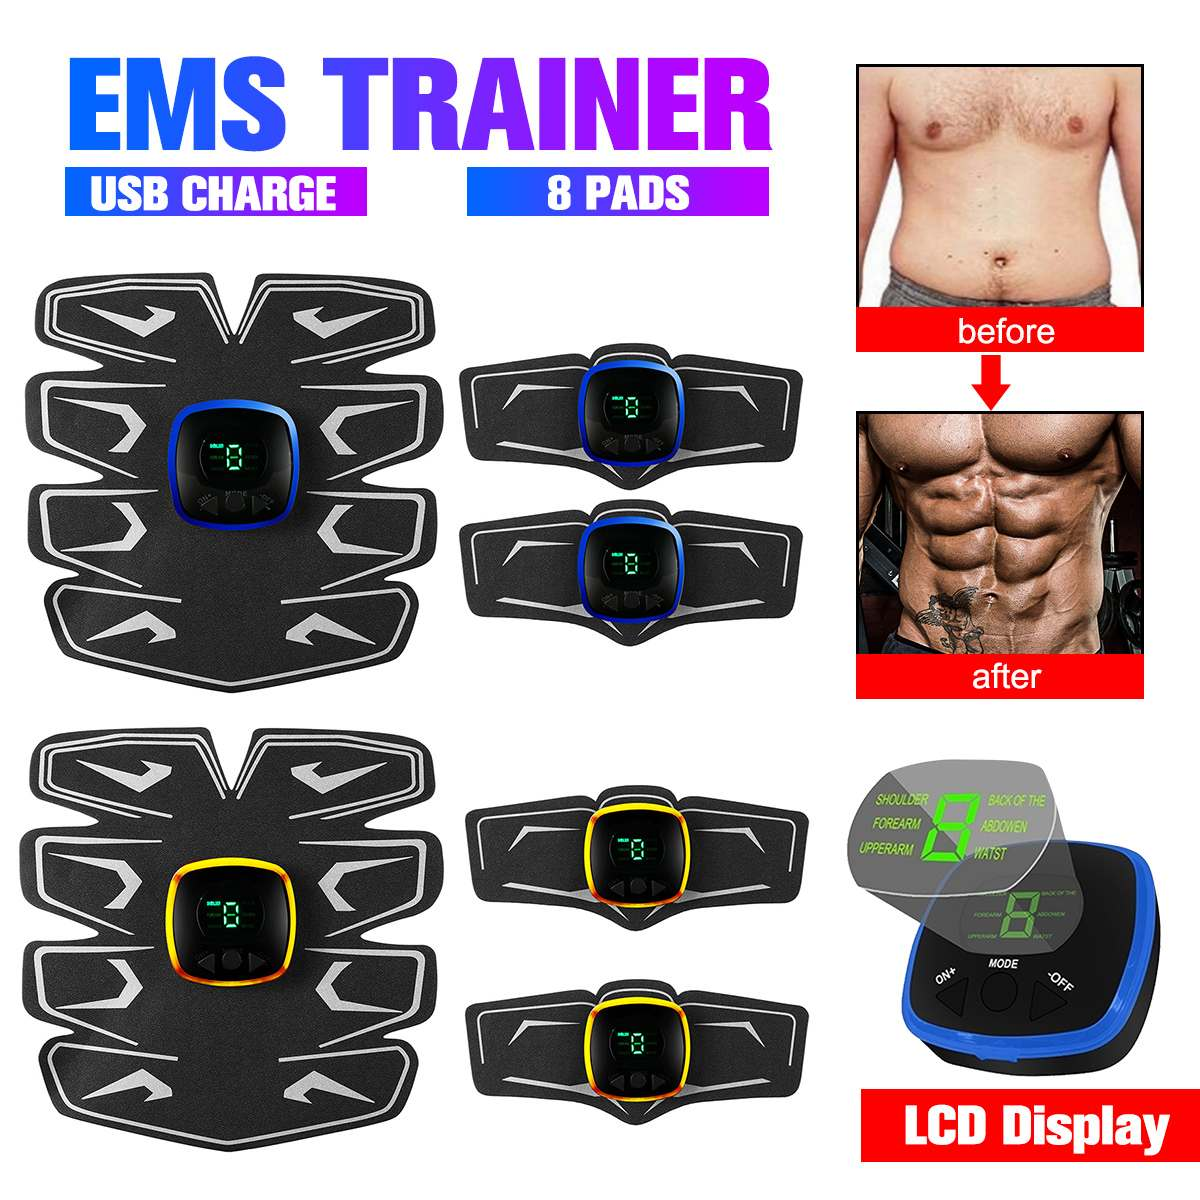 LCD Display Muscle Training Gear Electric Muscle Stimulator Body Massage Slimming Exercise Relaxation Trainer Fitness Equipment